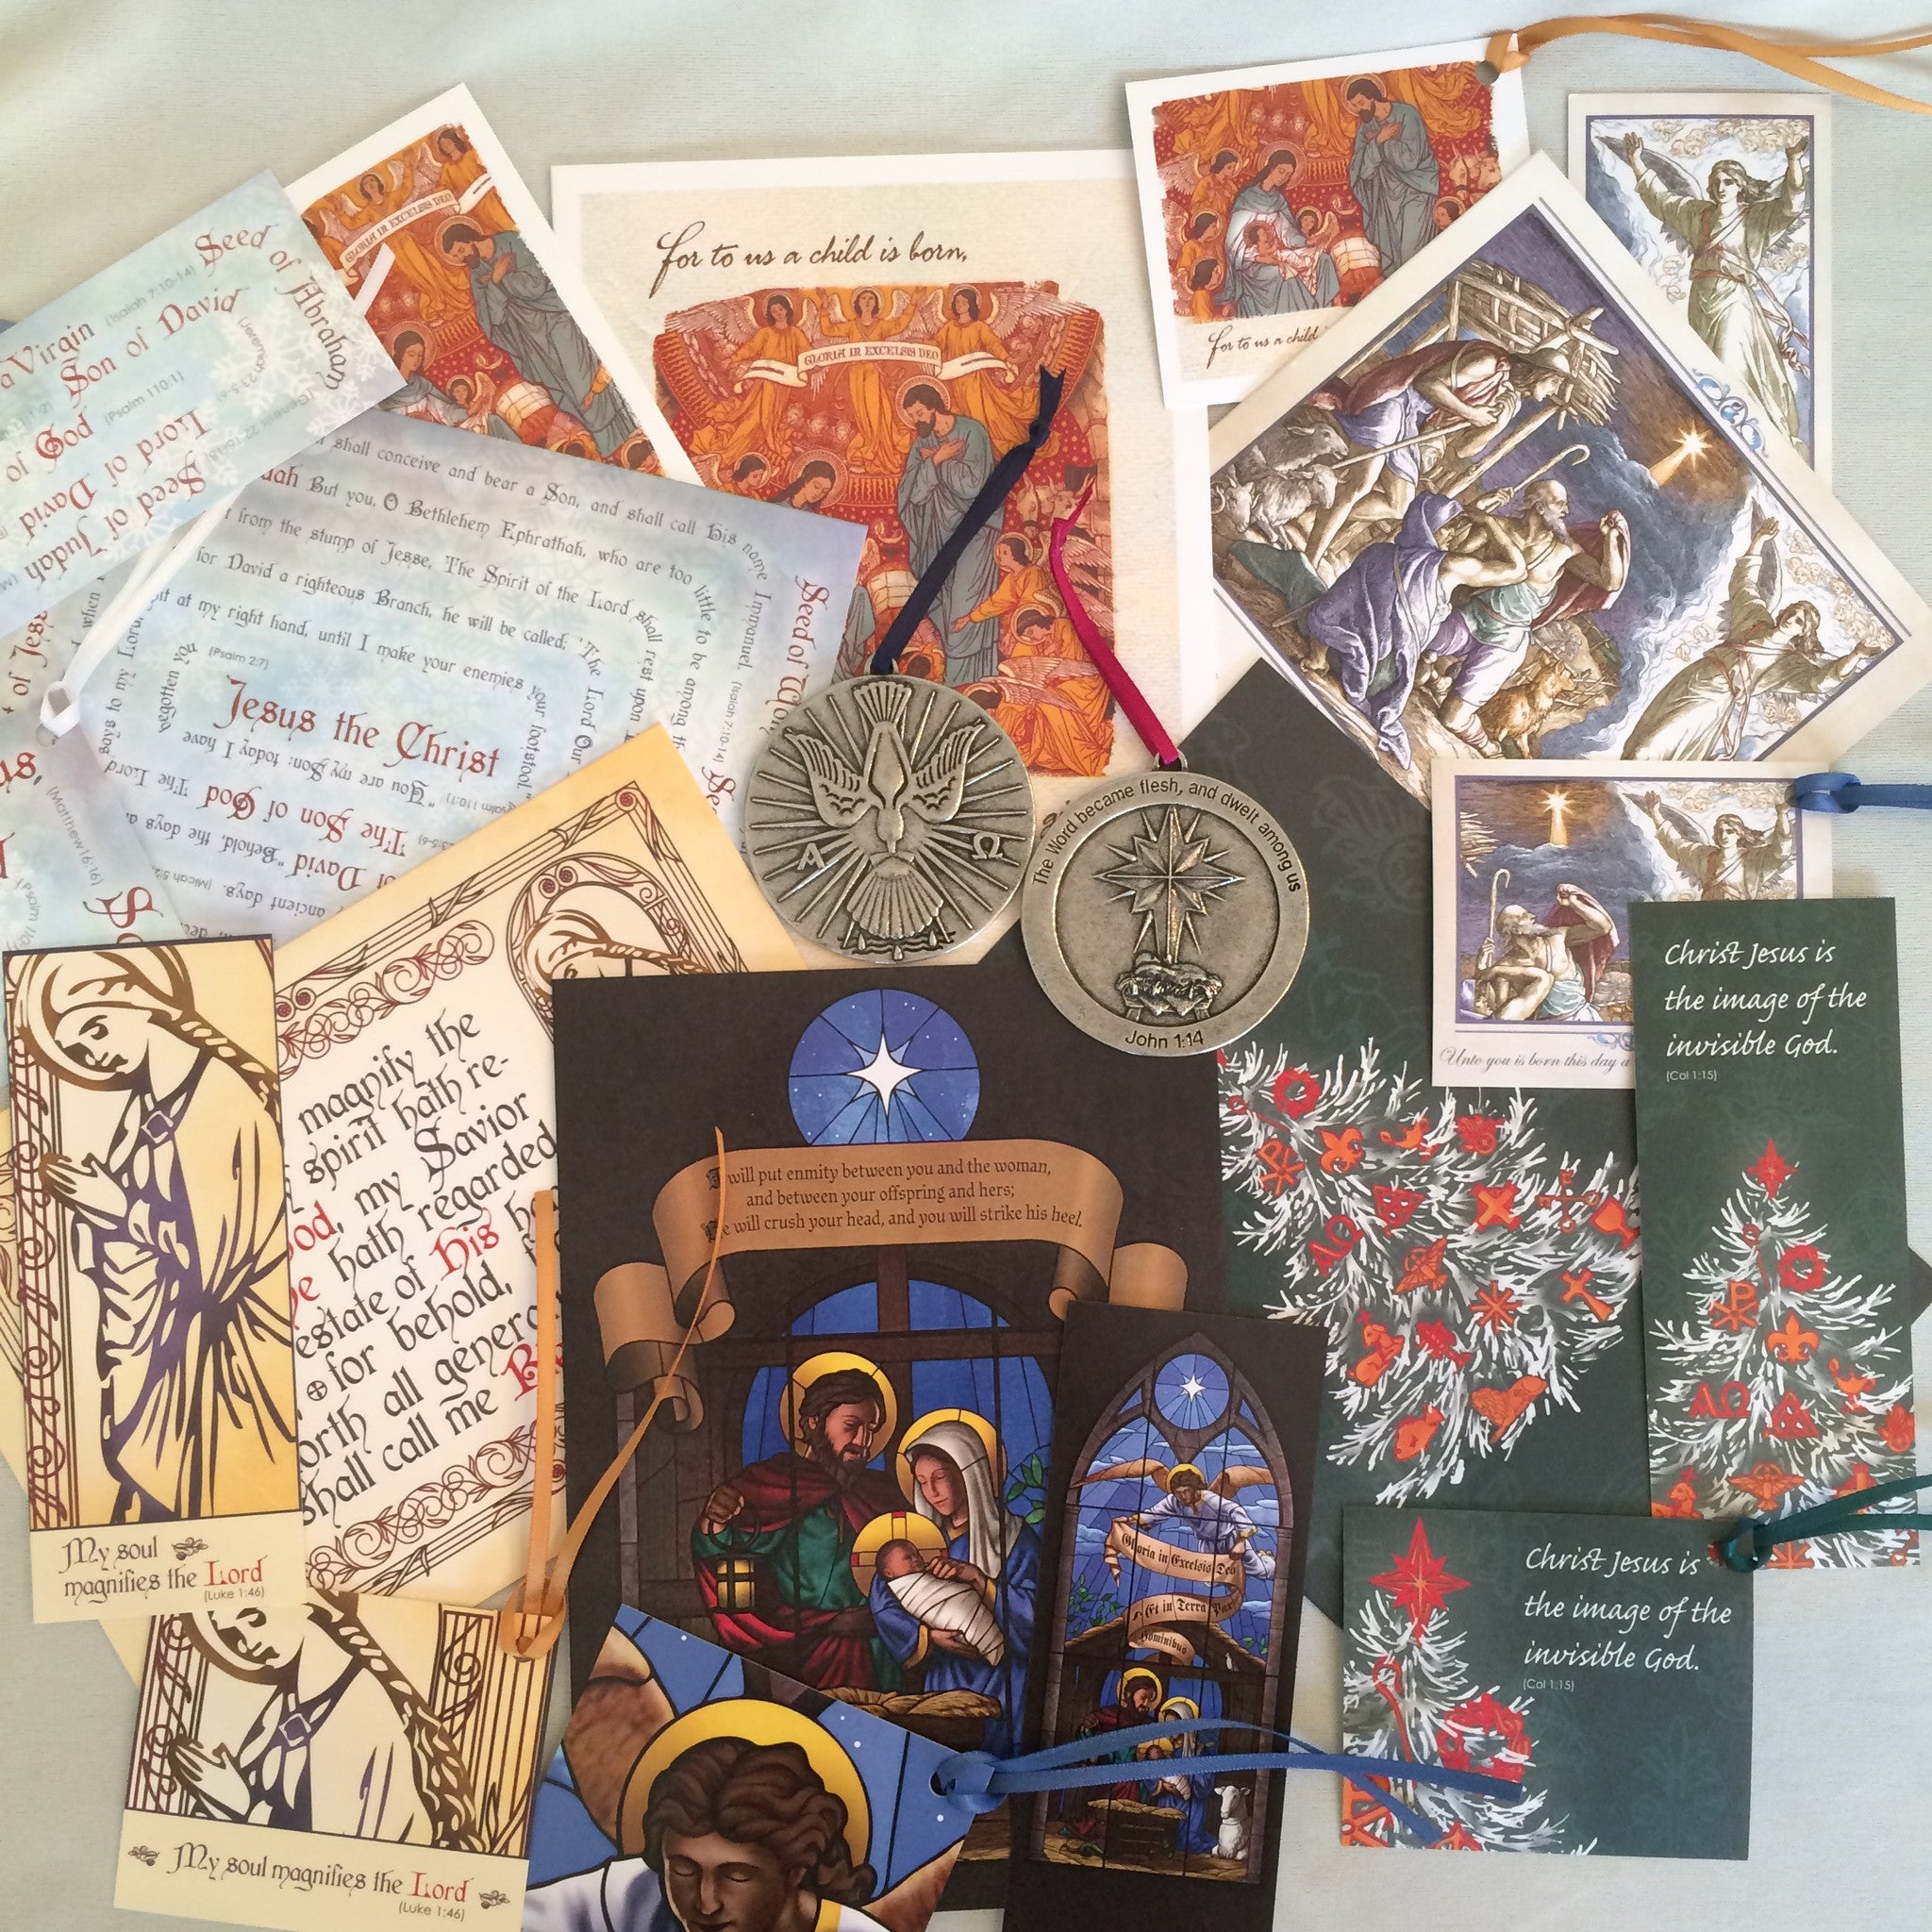 Ad Crucem Christmas Deluxe Sampler (28 Cards & 2 Ornaments) | $ 124.00